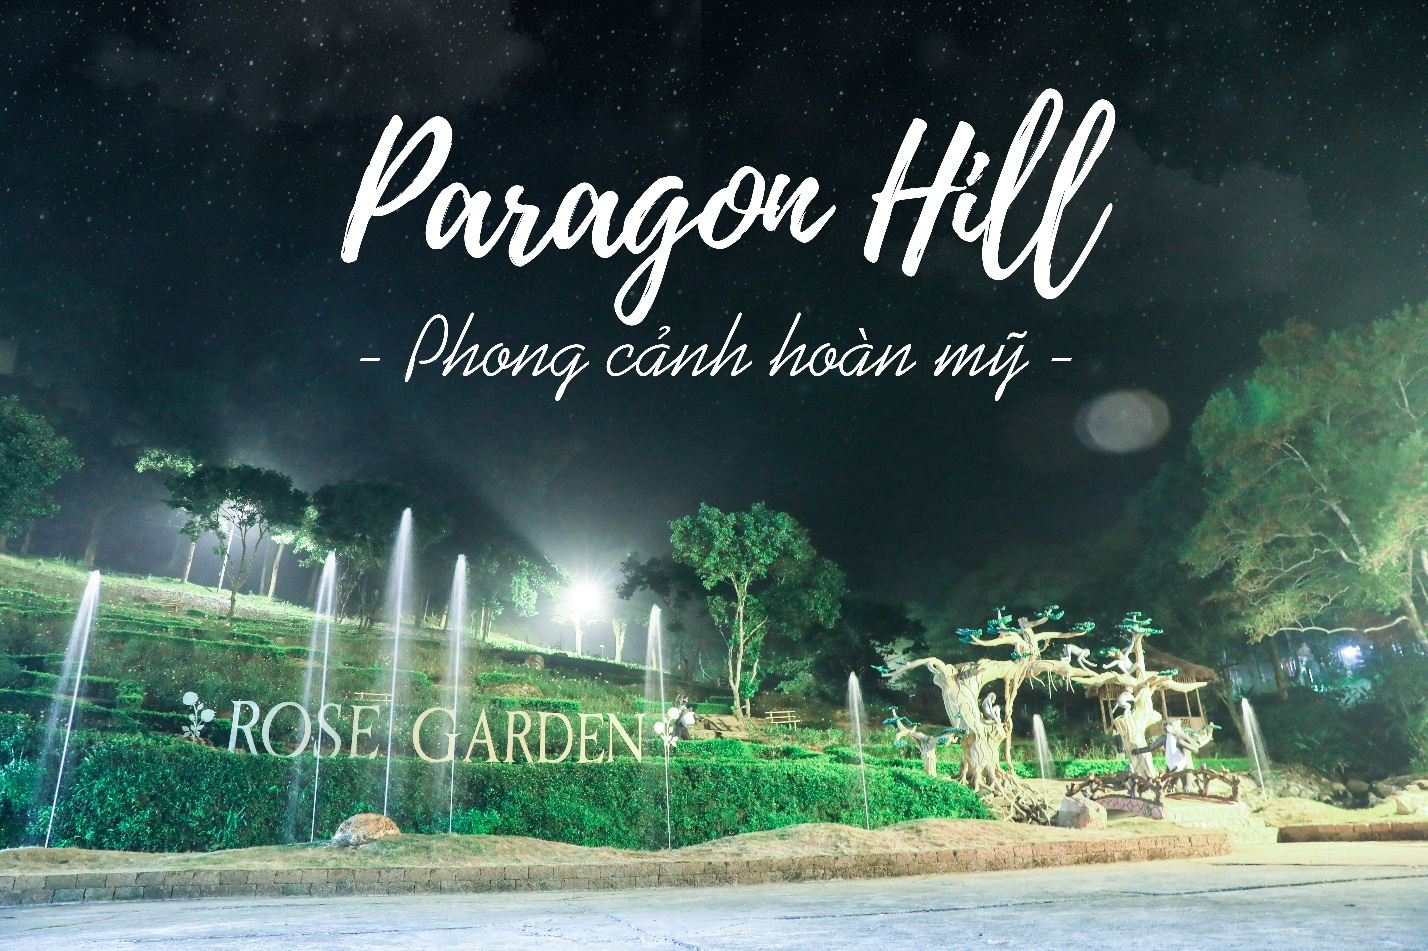 gia-ve-paragon-hill-resort